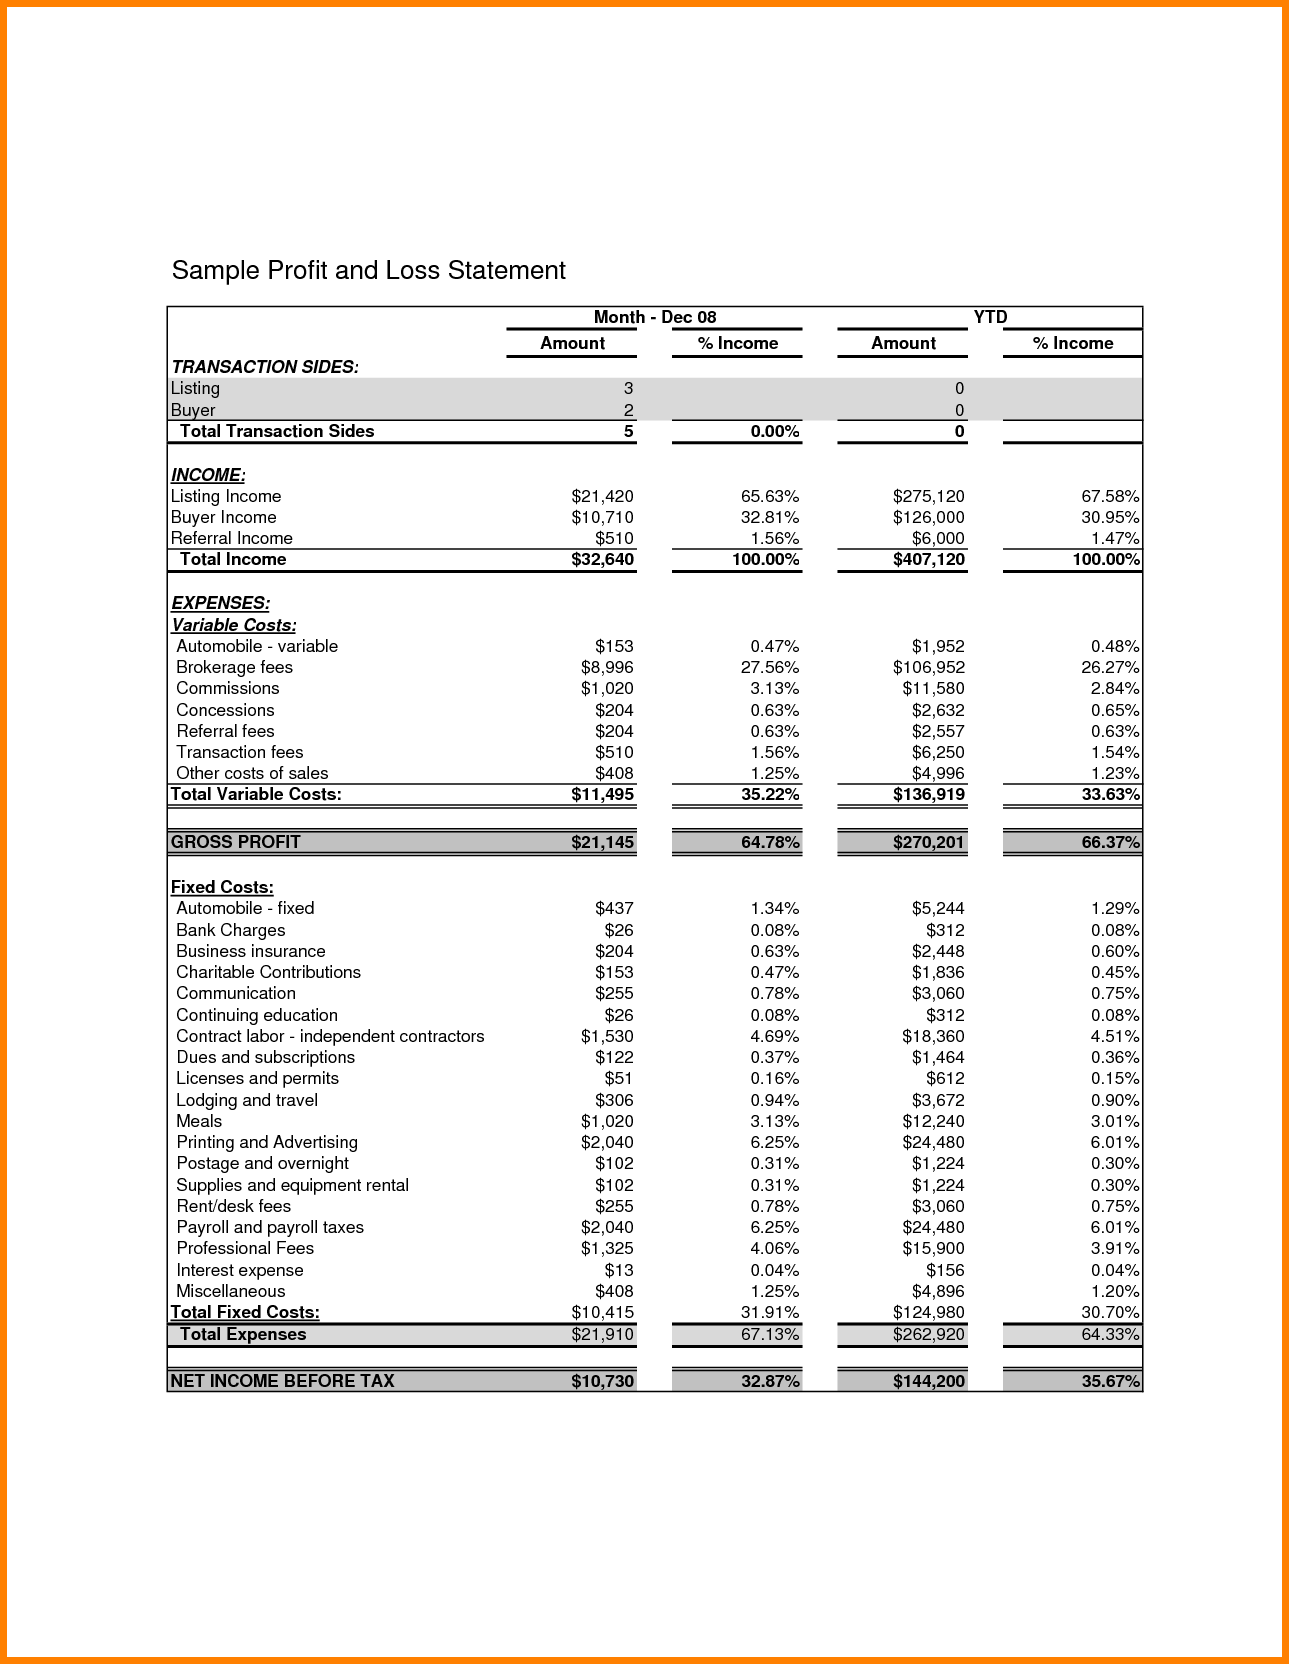 Sample Profit and Loss Statement Pdf and Sample Profit and Loss Statement Template for A Proposal